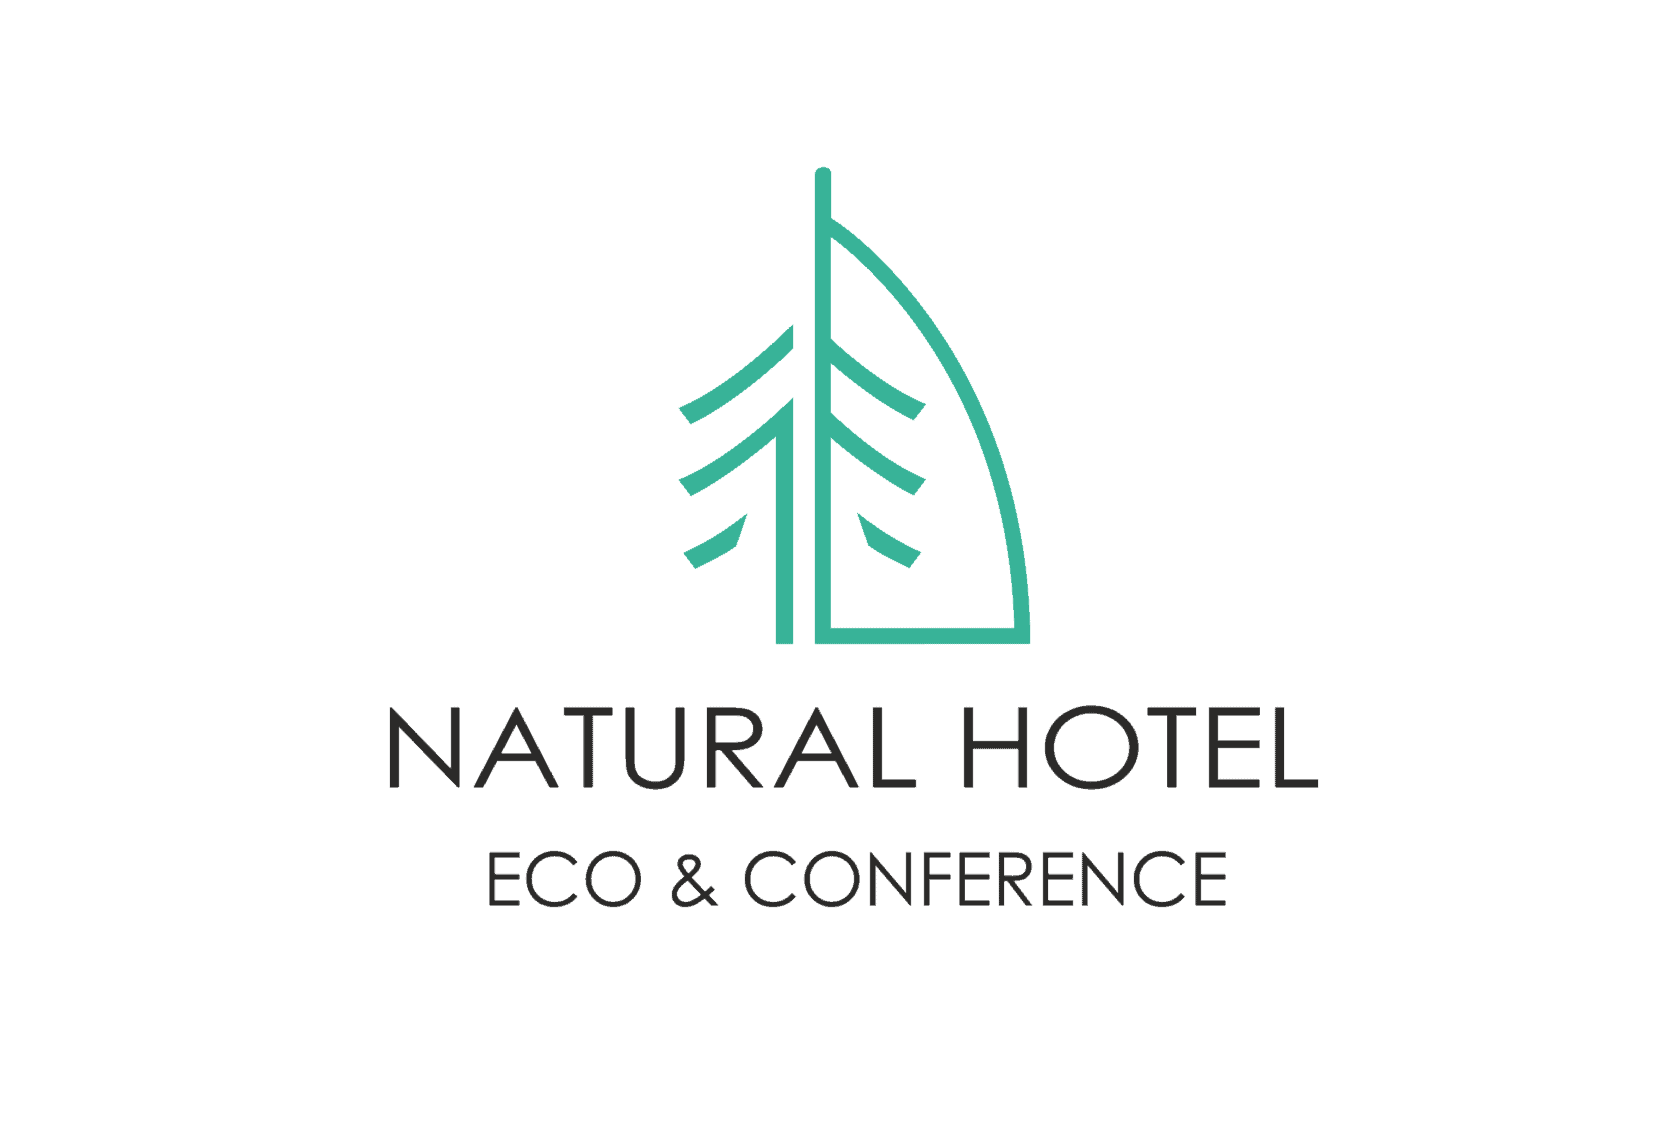 Natural Hotel Eco & Conference